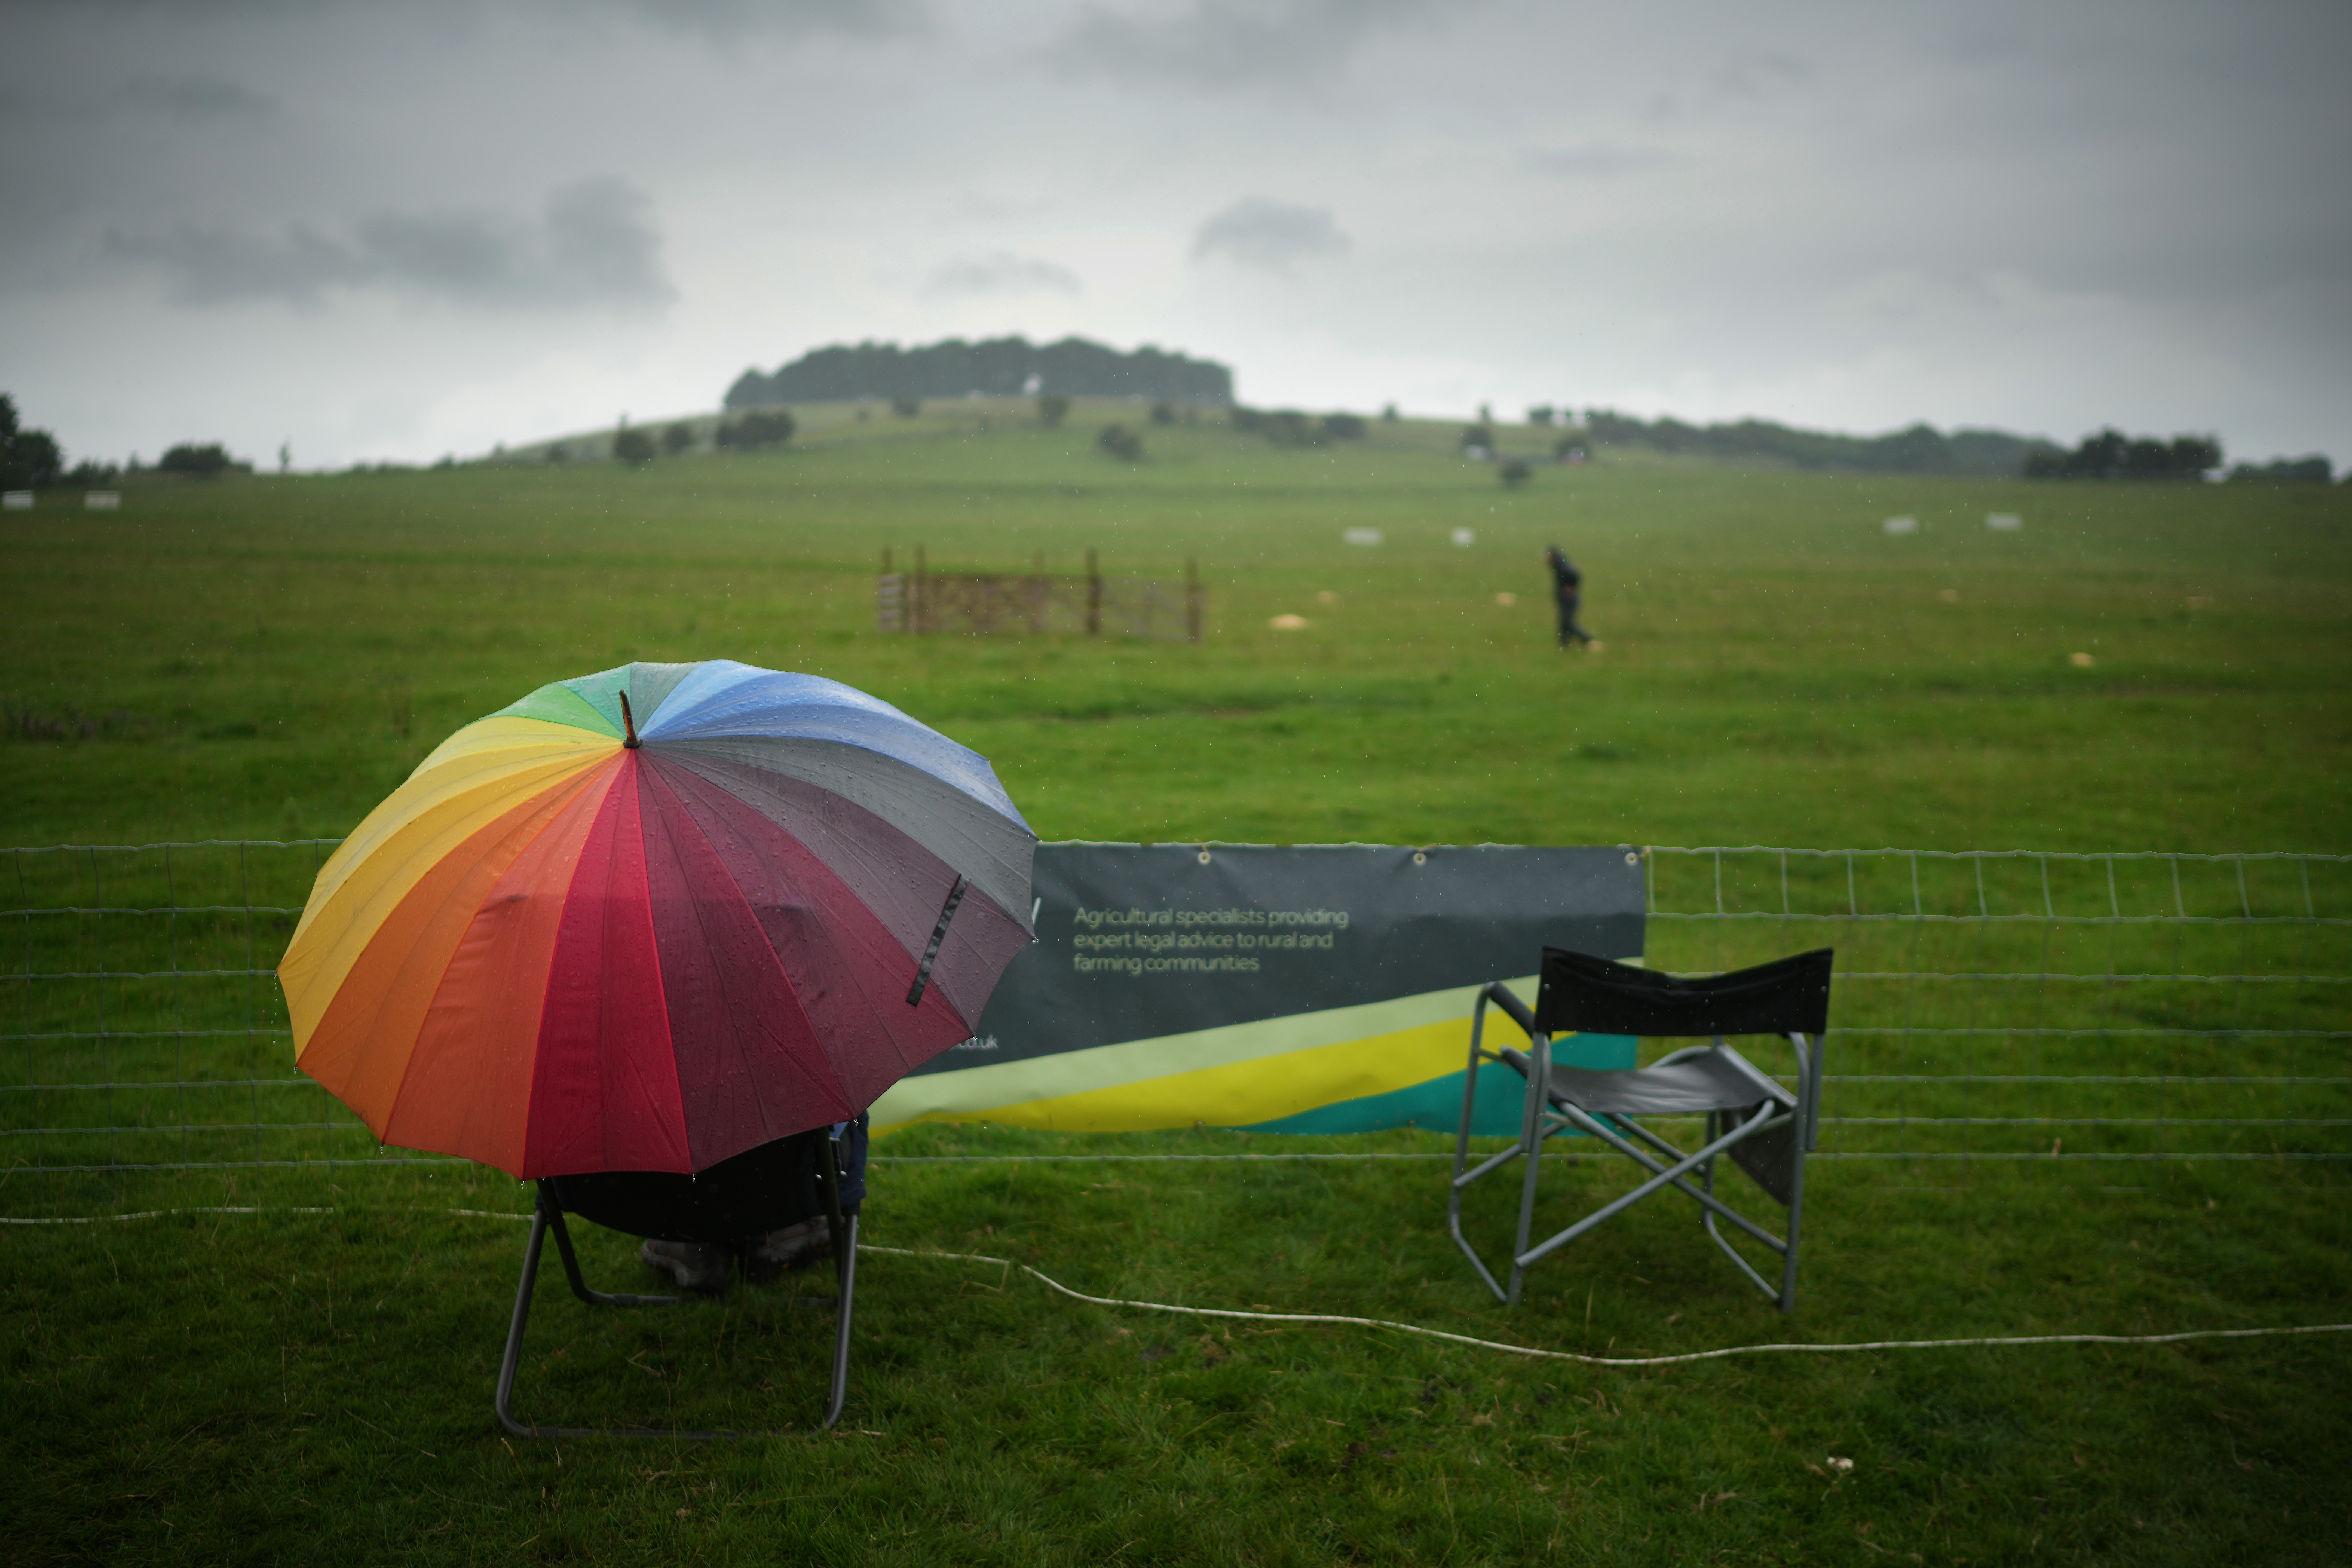 <p>ASHBOURNE, UNITED KINGDOM- JULY 30: Spectators brave the rain during the 2021 English National Sheep Dog Trials at Blore Pastures, near Dovedale, in the Peak District on July 30, 2021 in Ashbourne, United Kingdom. Top handlers and dogs from across England are taking part in the historic trial after last years event was cancelled due to the pandemic. (Photo by Christopher Furlong/Getty Images)</p>